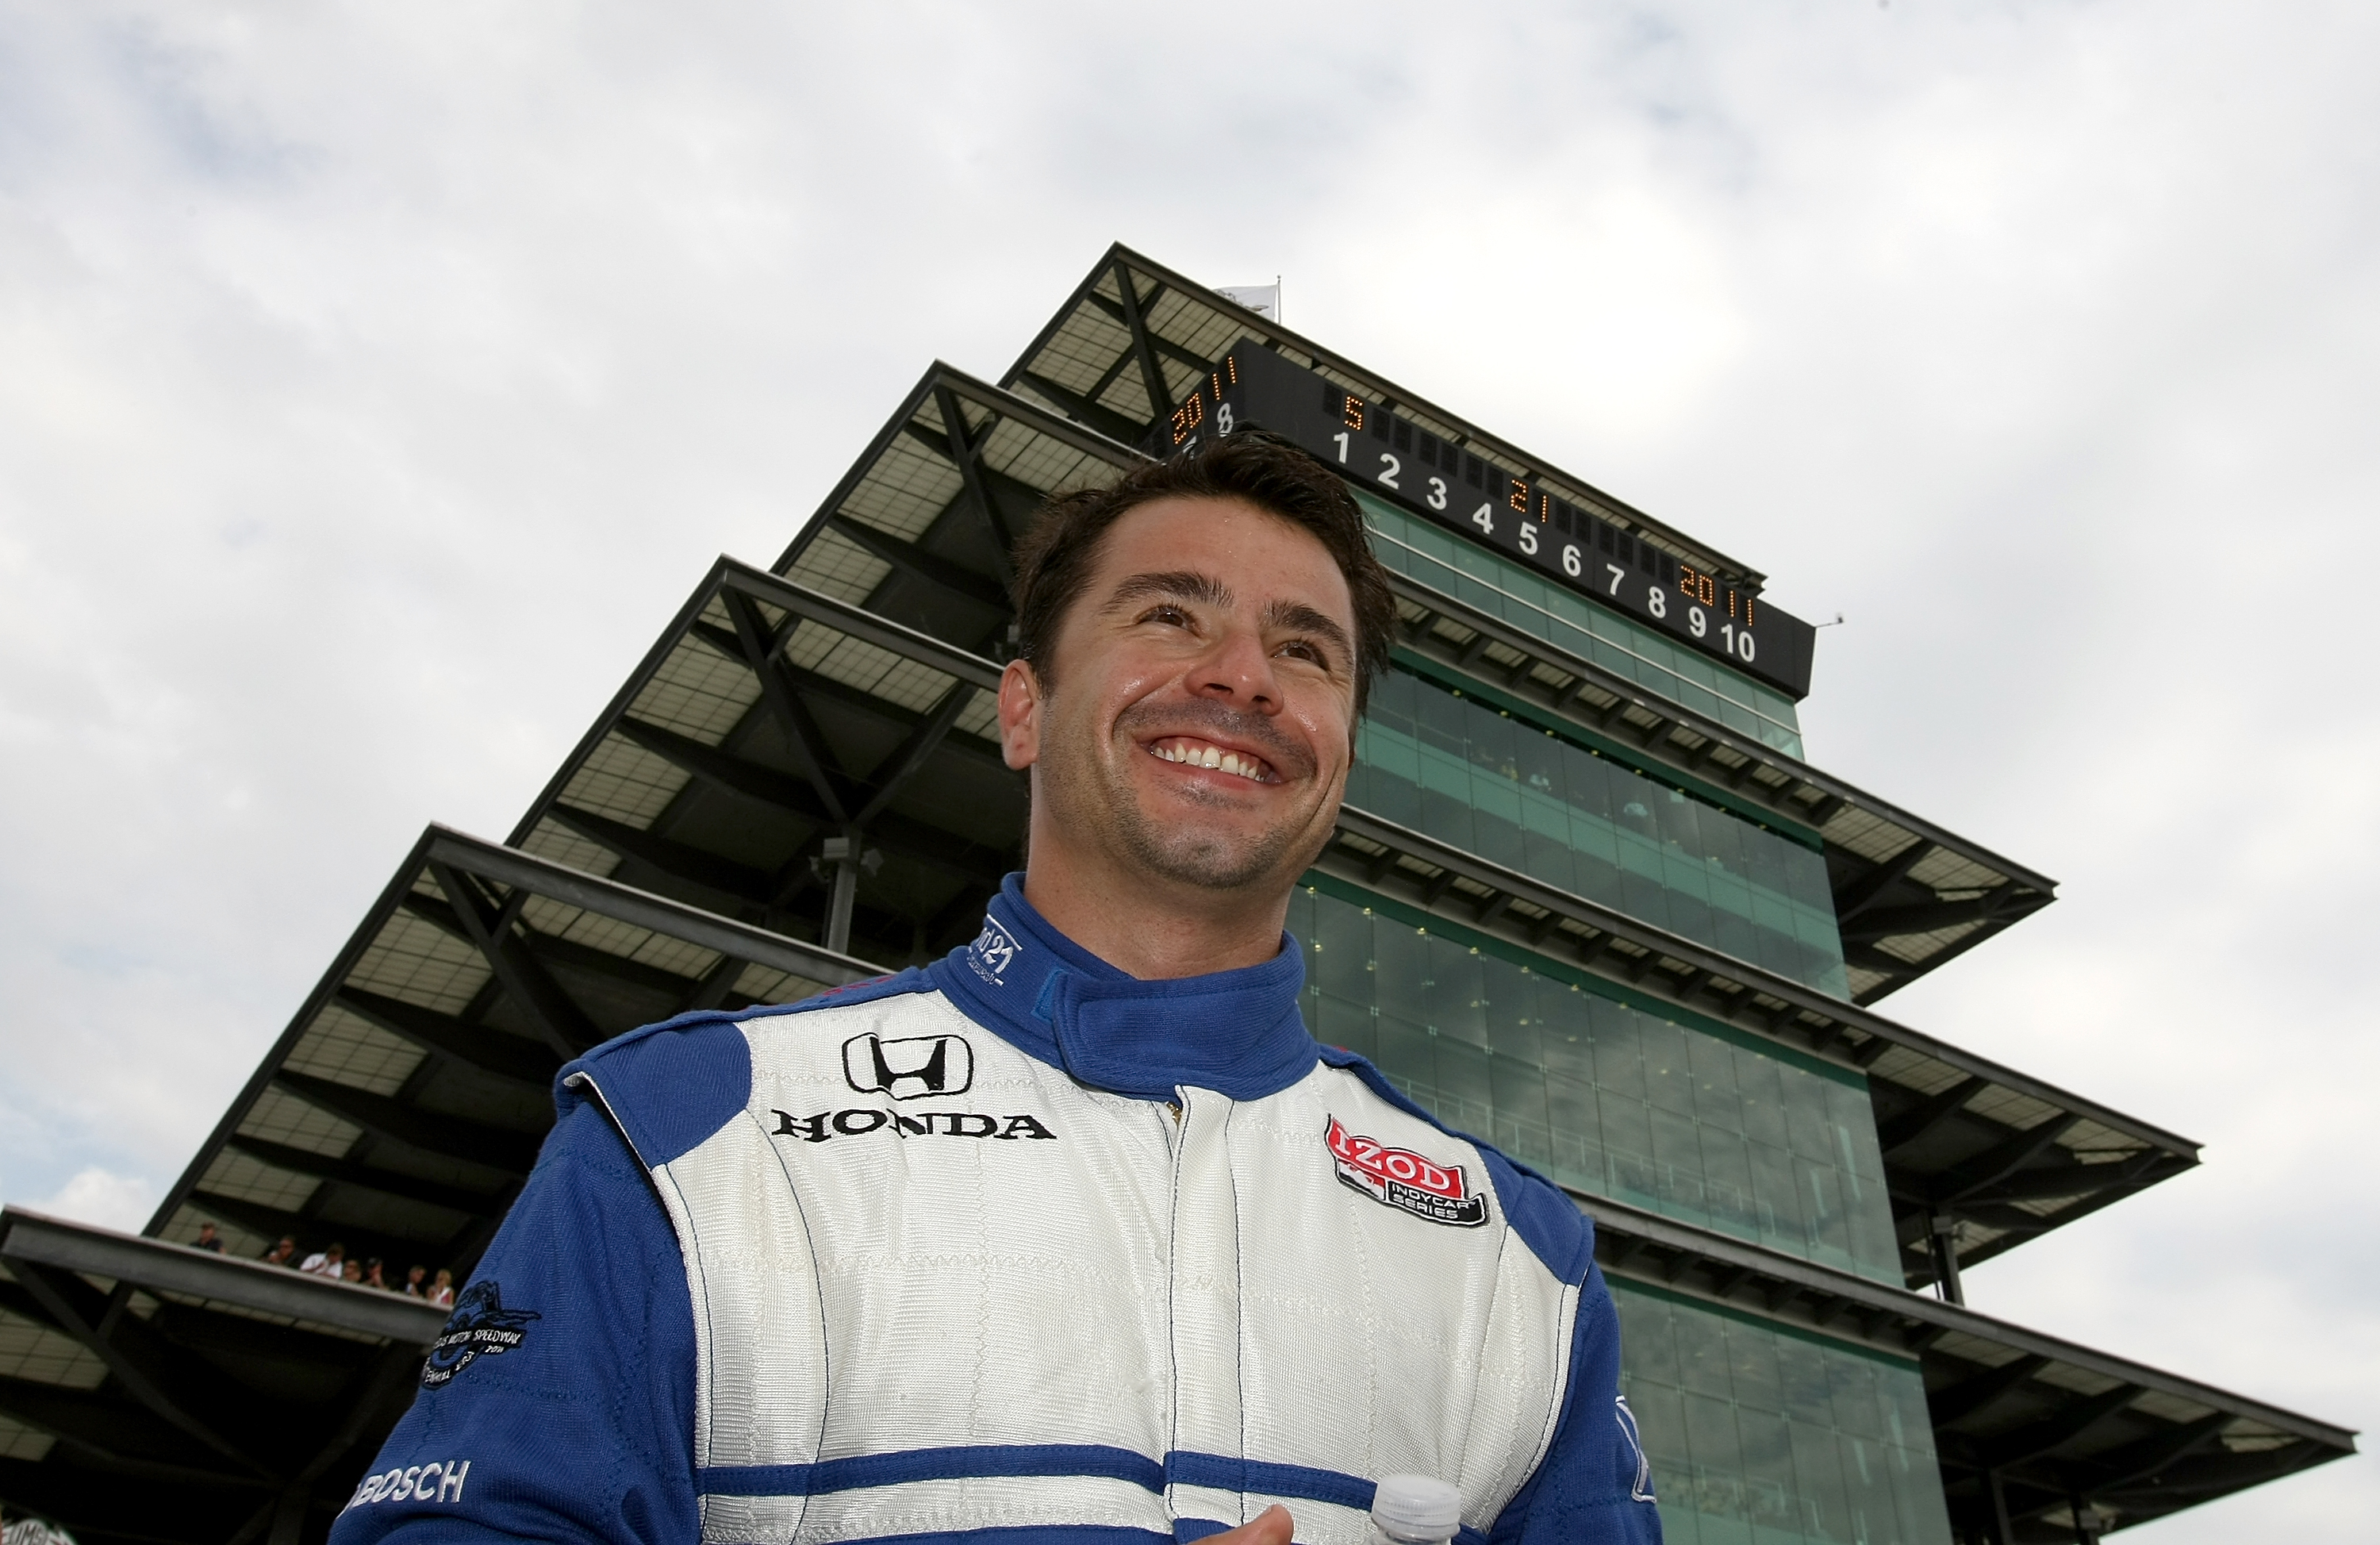 INDIANAPOLIS, IN- MAY 21: Oriol Servia, driver of the #2 Telemundo Newman Haas Racing Dallara Honda smiles during qualifying for the the 95th Indianapolis 500 Mile Race at the Indianapolis Motor Speedway on May 21, 2011 in Indianapolis, Indiana.  (Photo b